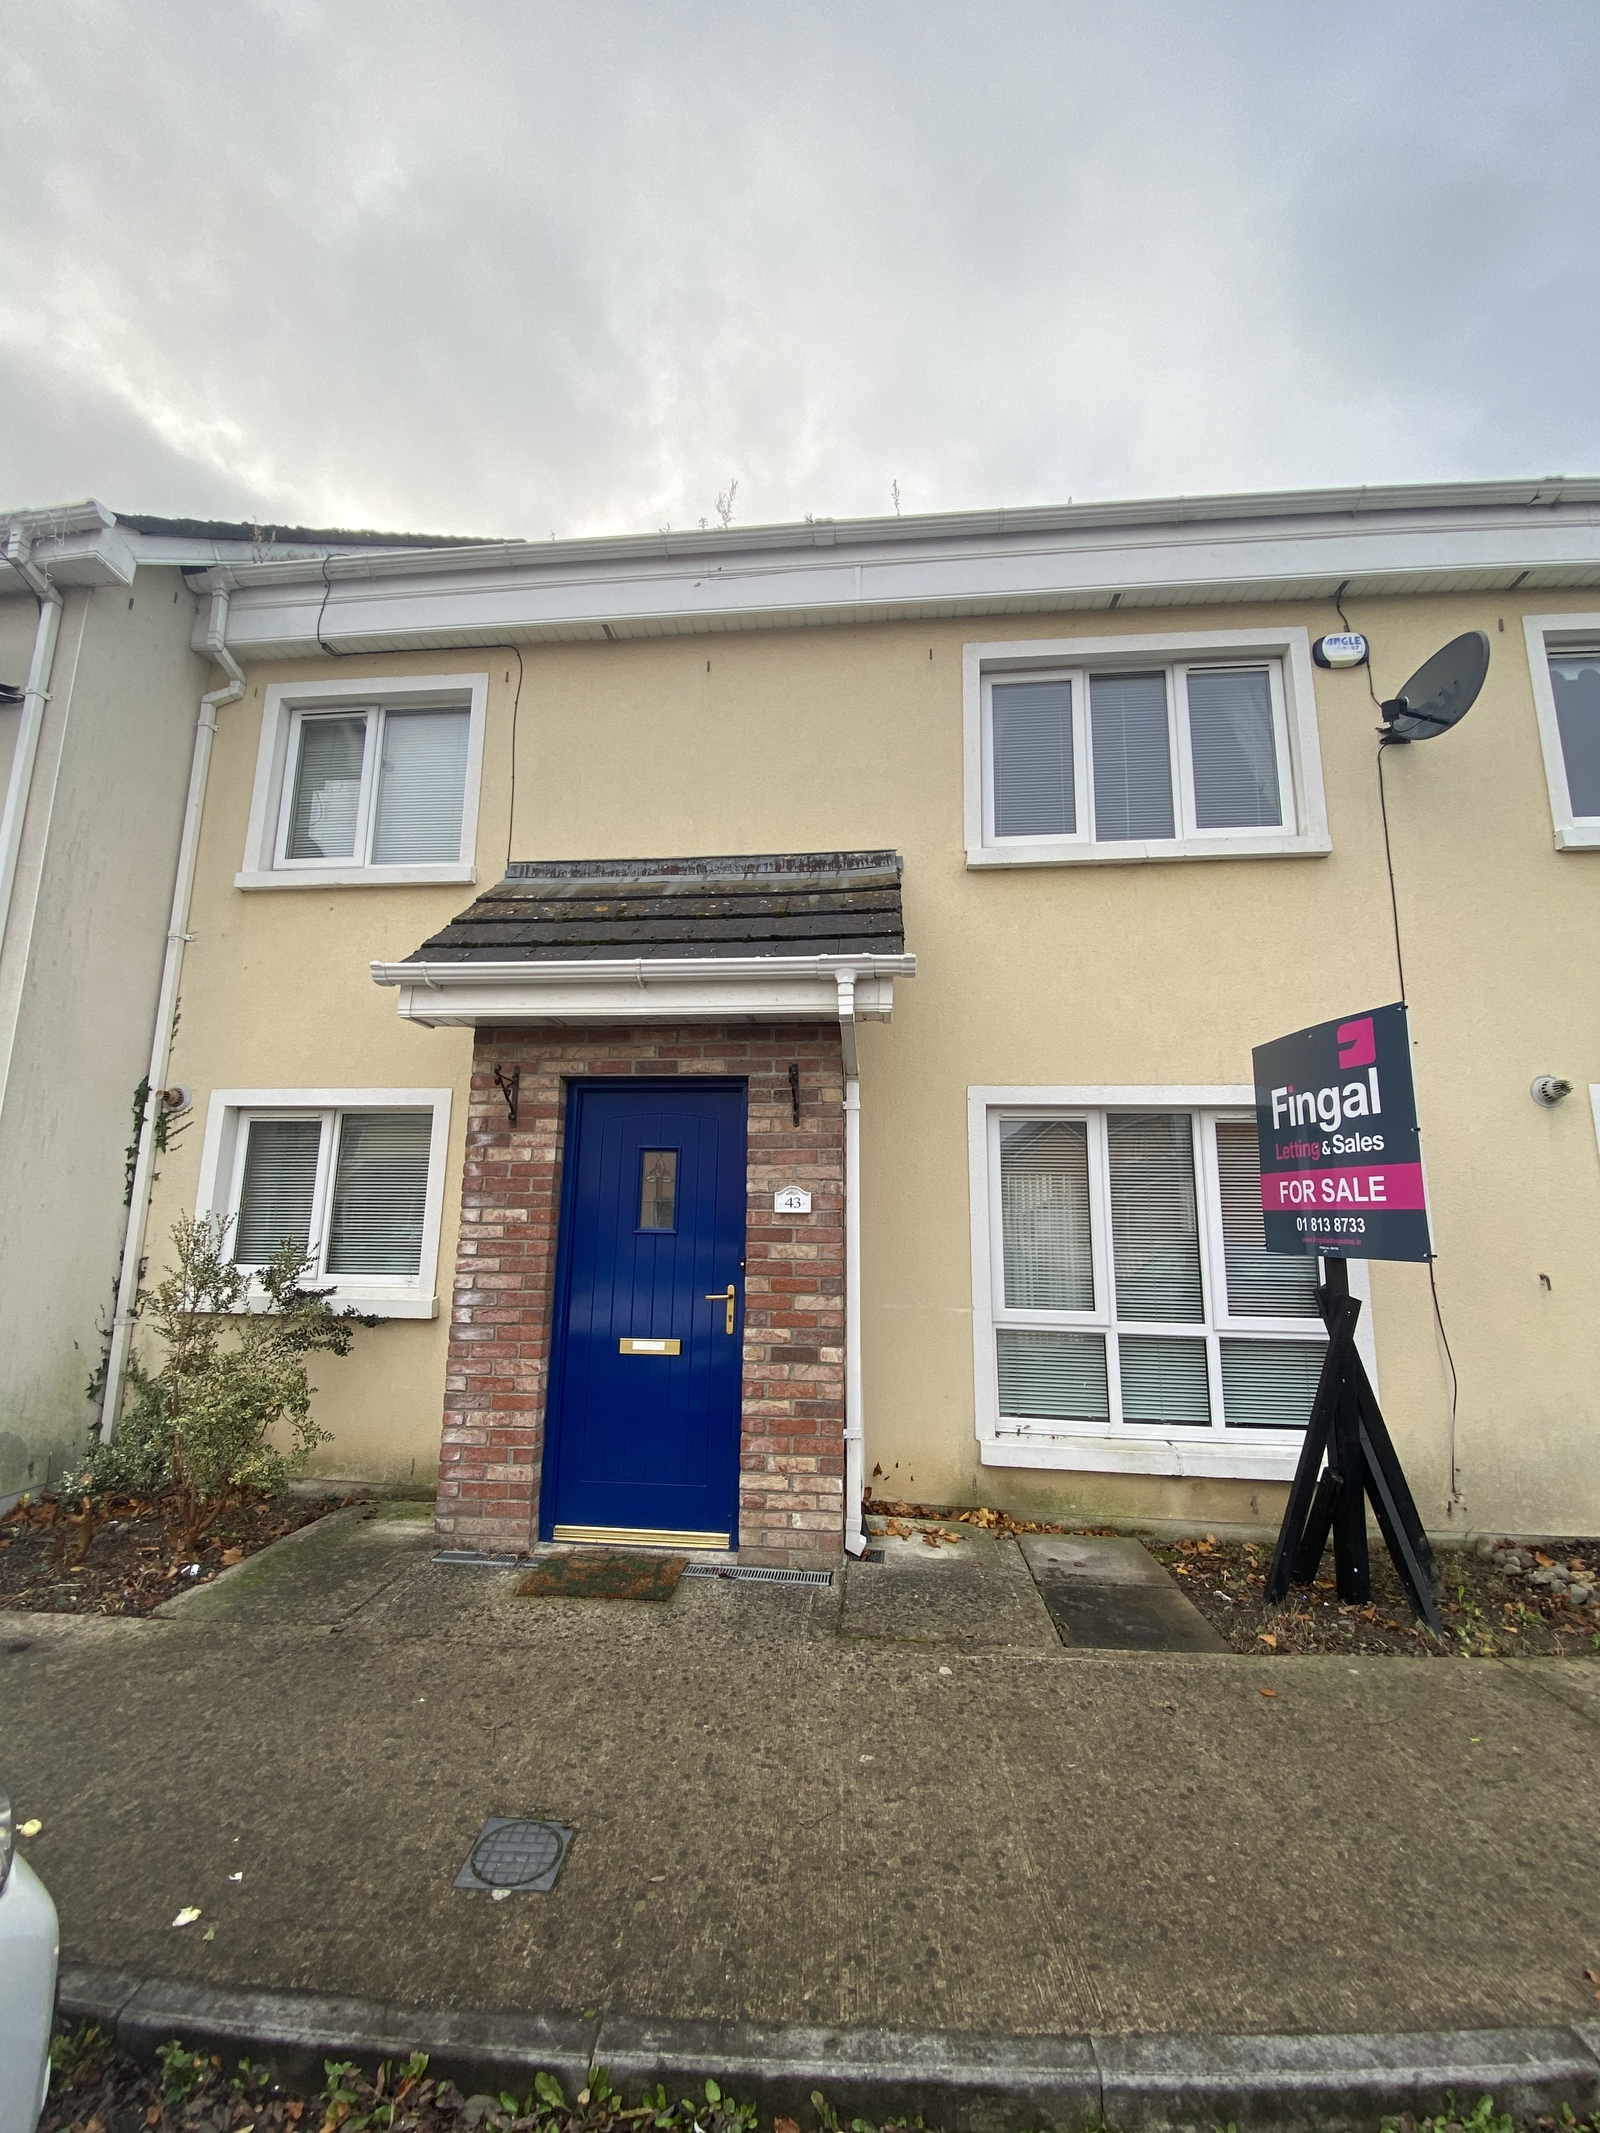 43 Chapel Farm Avenue, Lusk, Co. Dublin